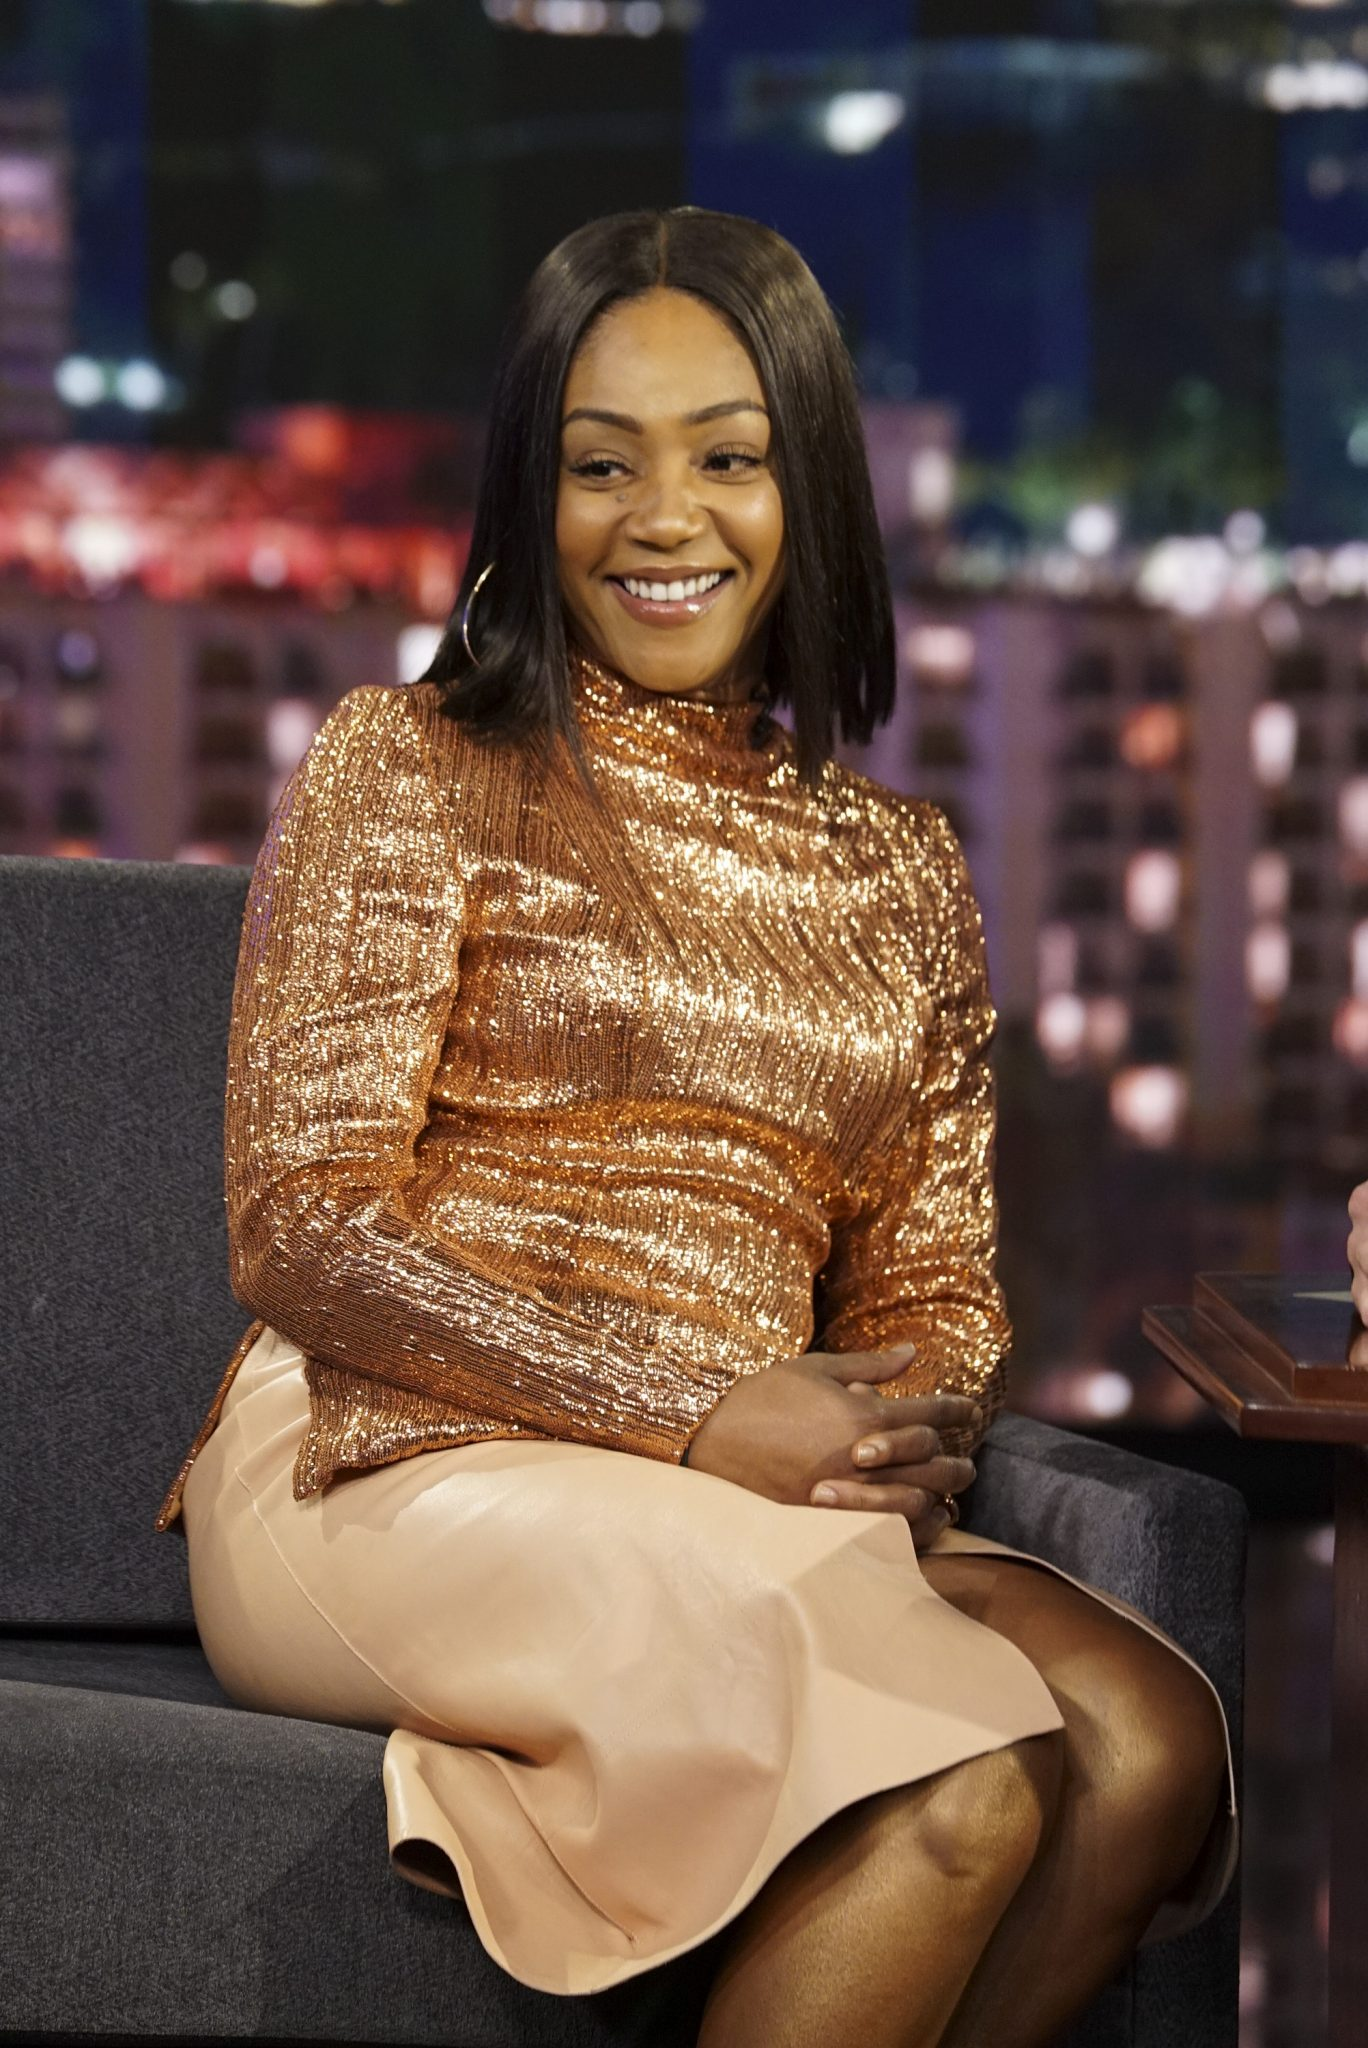 In Case You Missed It: Tiffany Haddish On Jimmy Kimmel Live